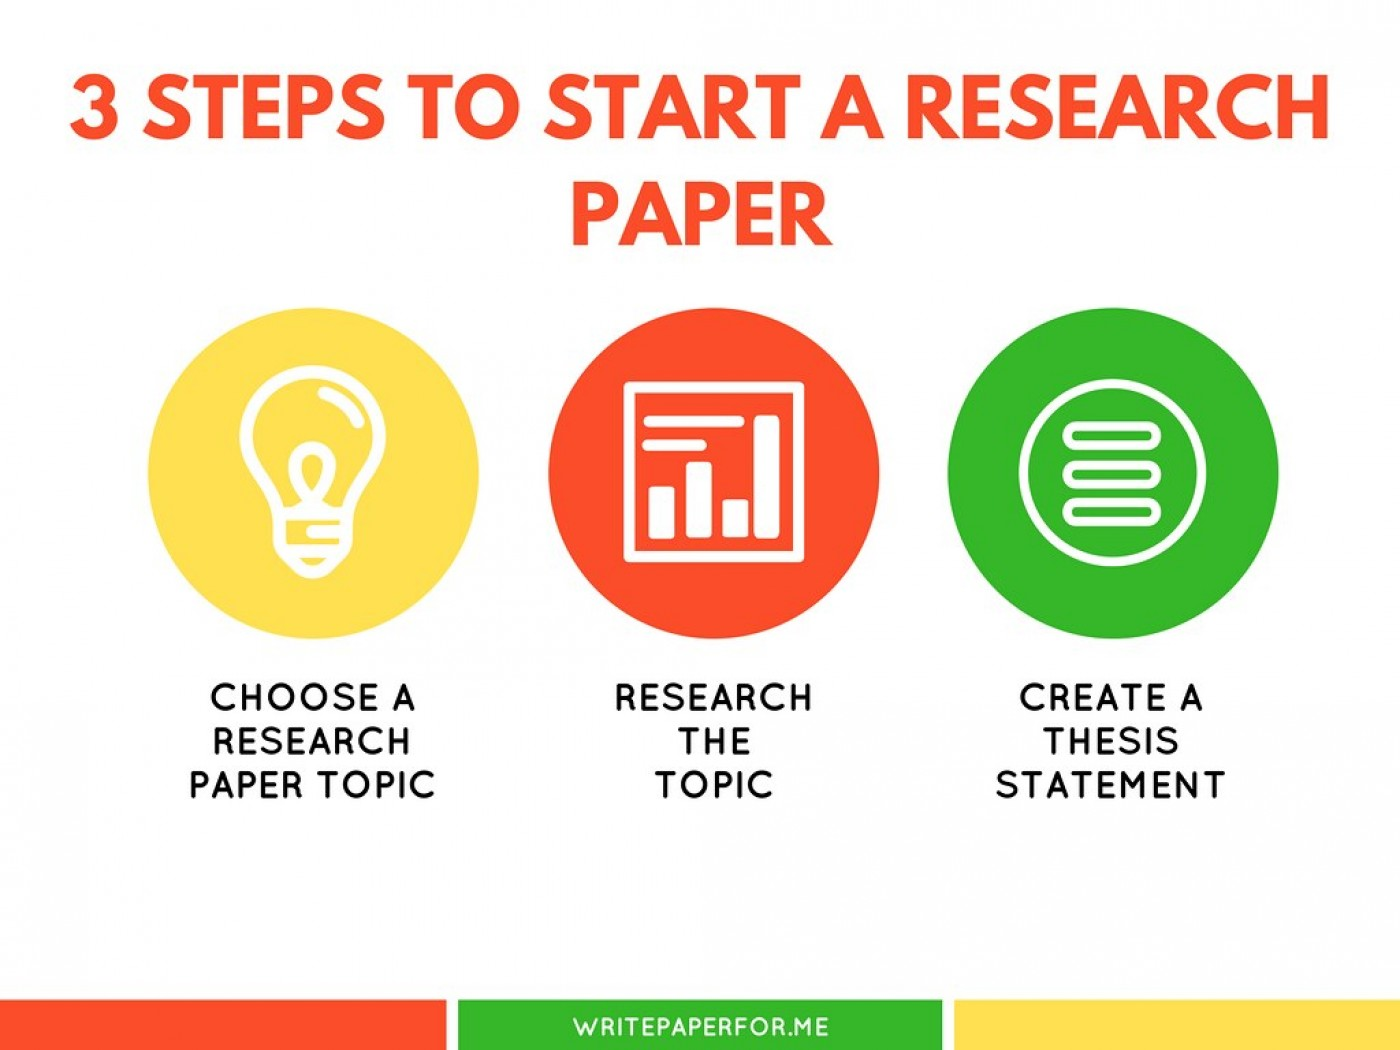 004 Research Paper 44059860914 0a9ff0d74e B How To Start Beautiful A Off Thesis Write Proposal Outline Apa 1400